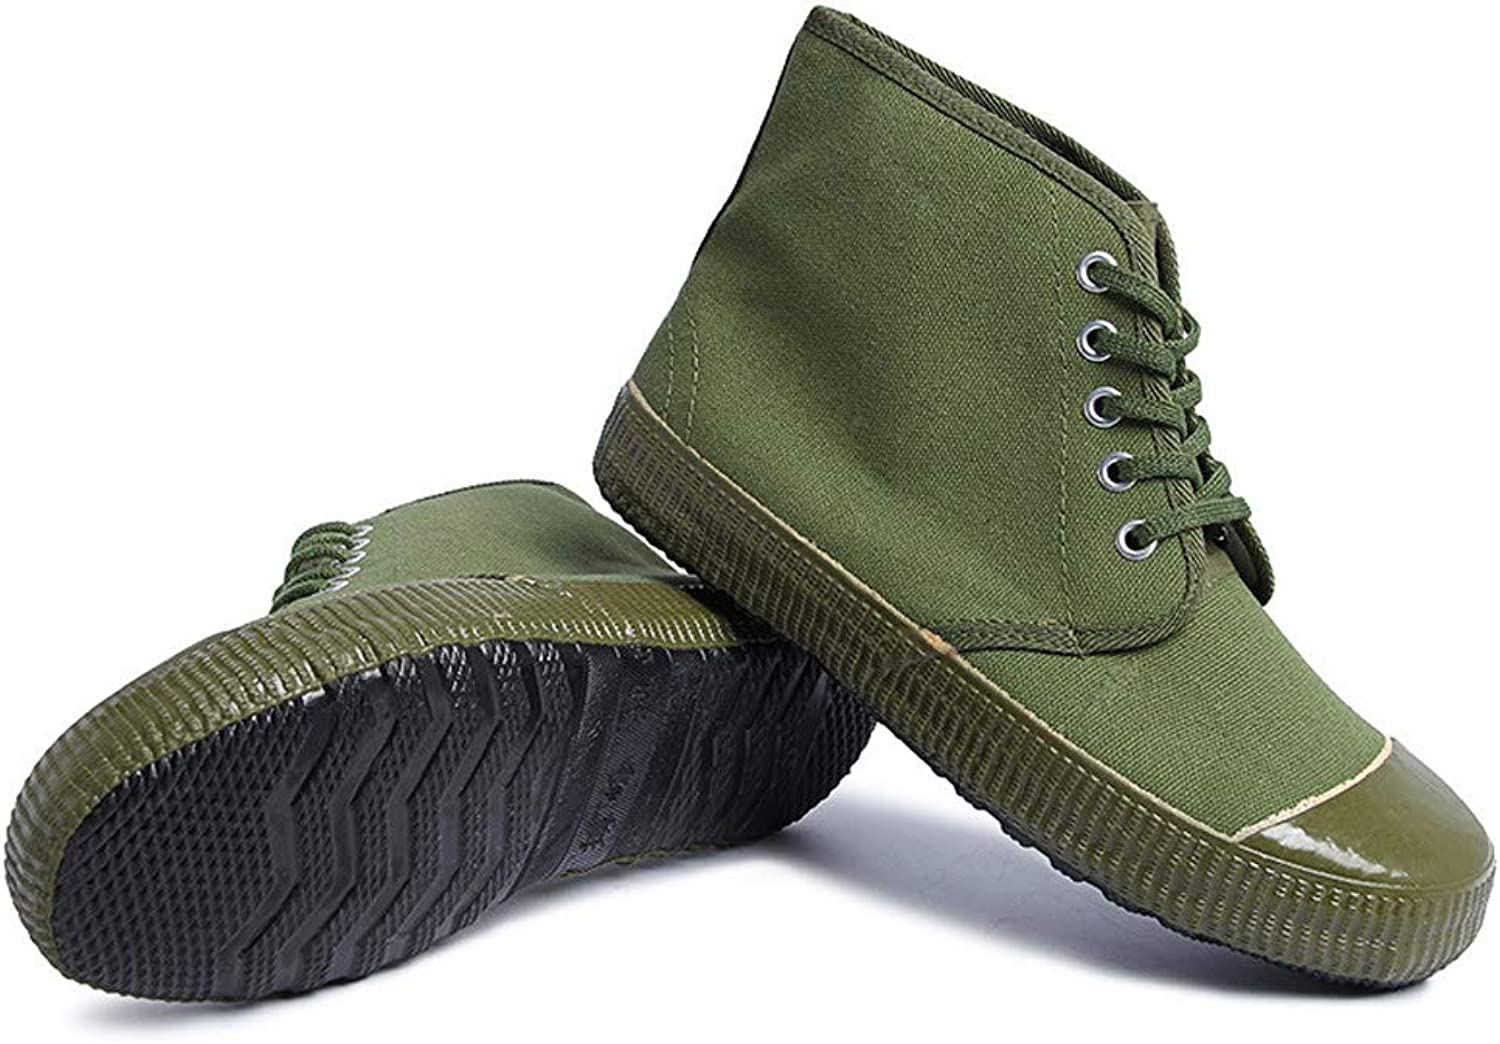 RcnryHigh grade canvas shoes, farm camouflage canvas rubber shoes, outdoor mountaineering, wear resistant, skid proof and breathable shoes.